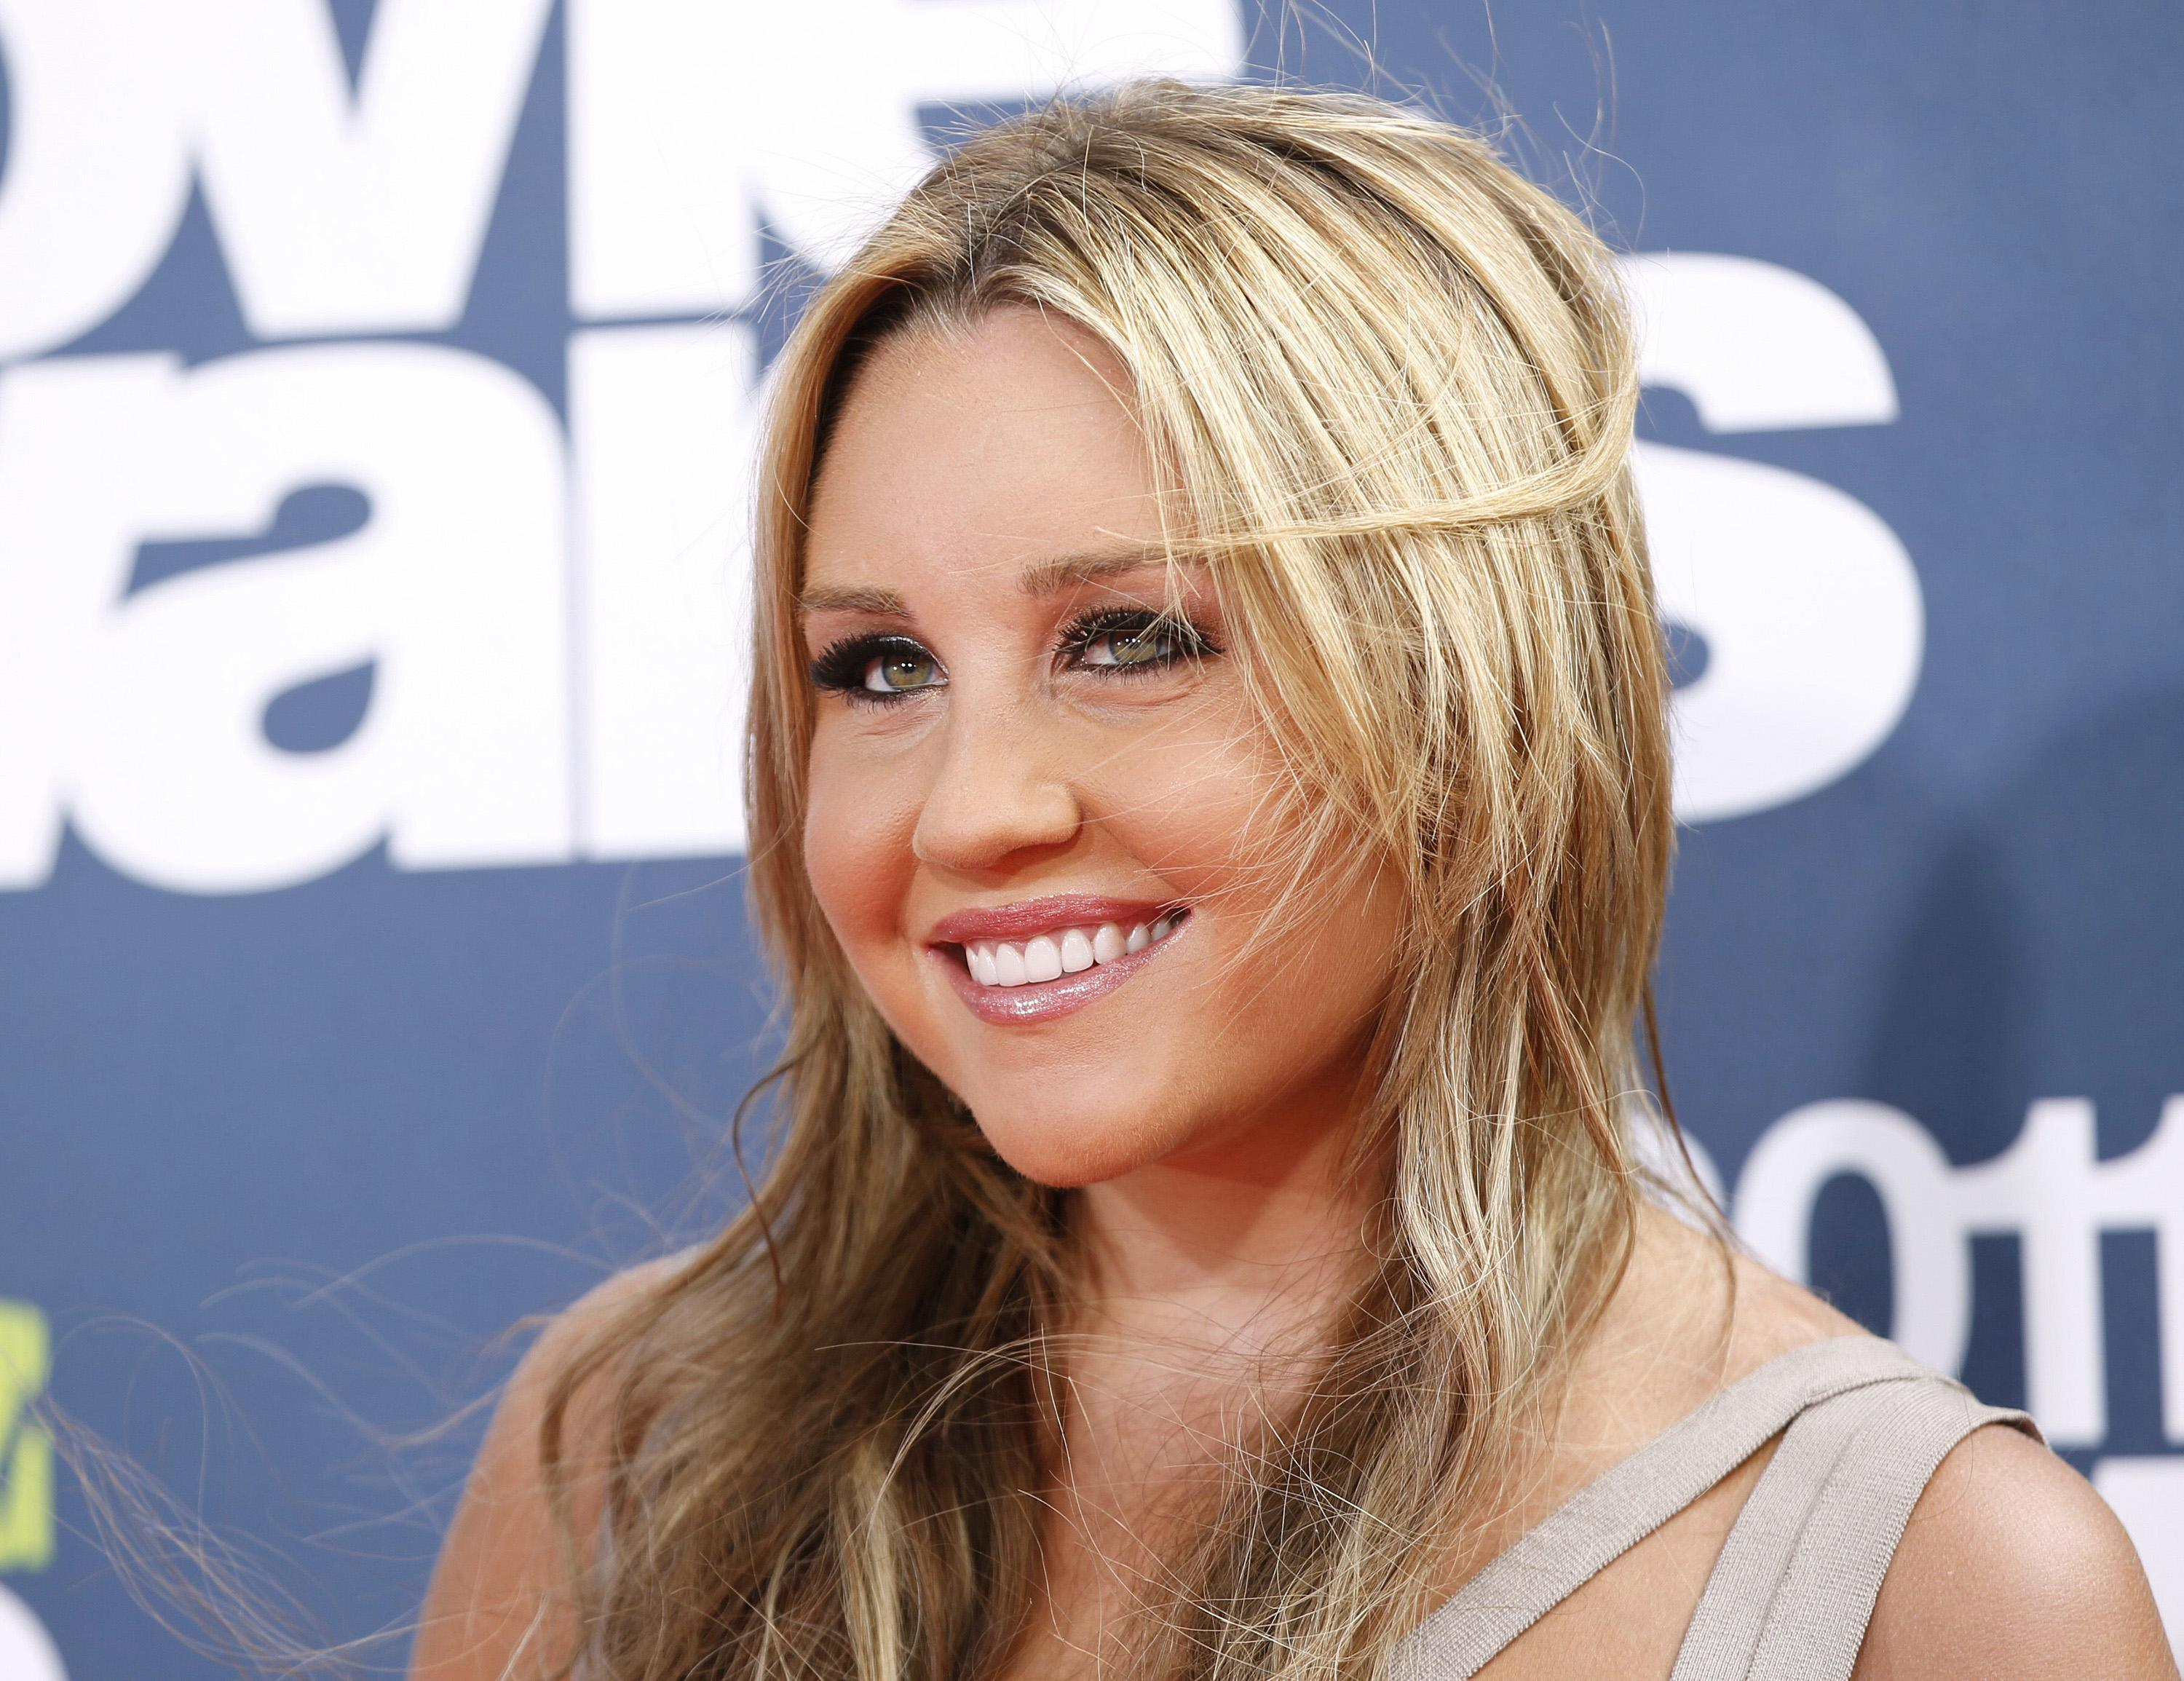 Amanda Bynes Nipples amanda bynes: not naked in public, says tanning salon ceo